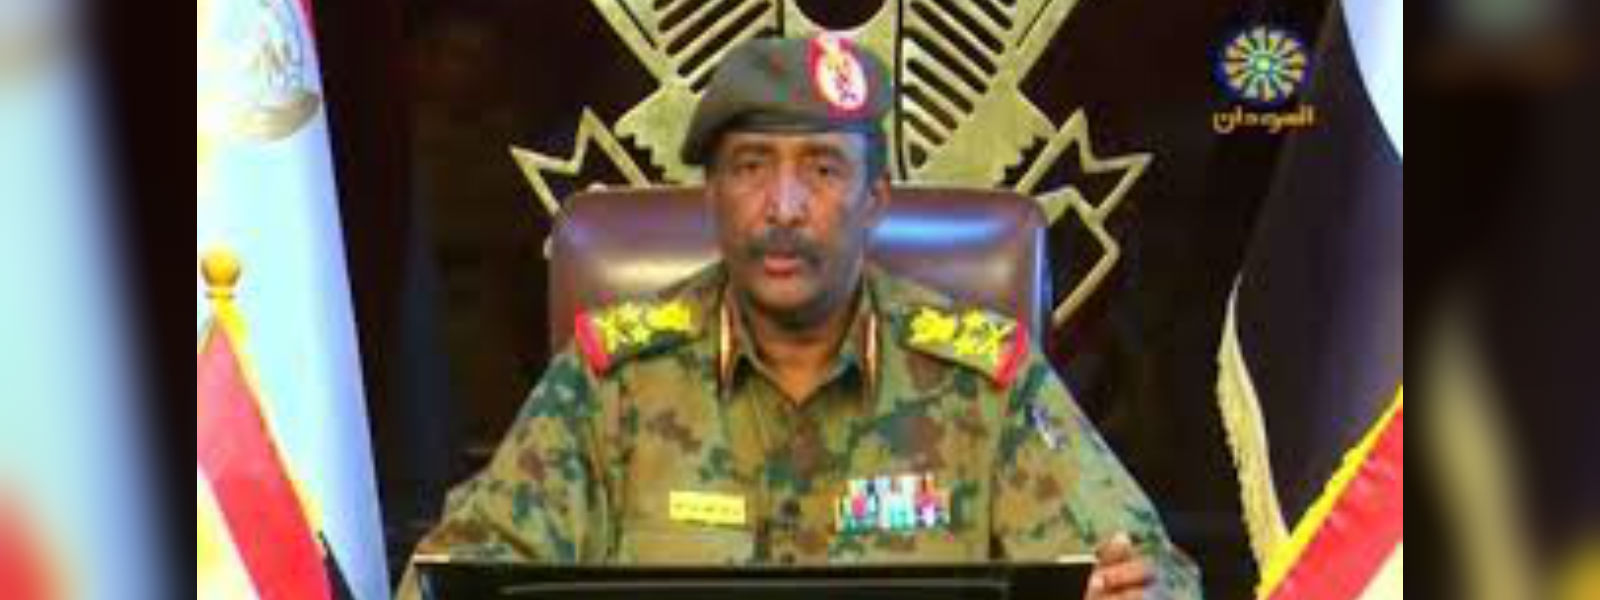 Sudan's military rulers say coup attempt thwarted